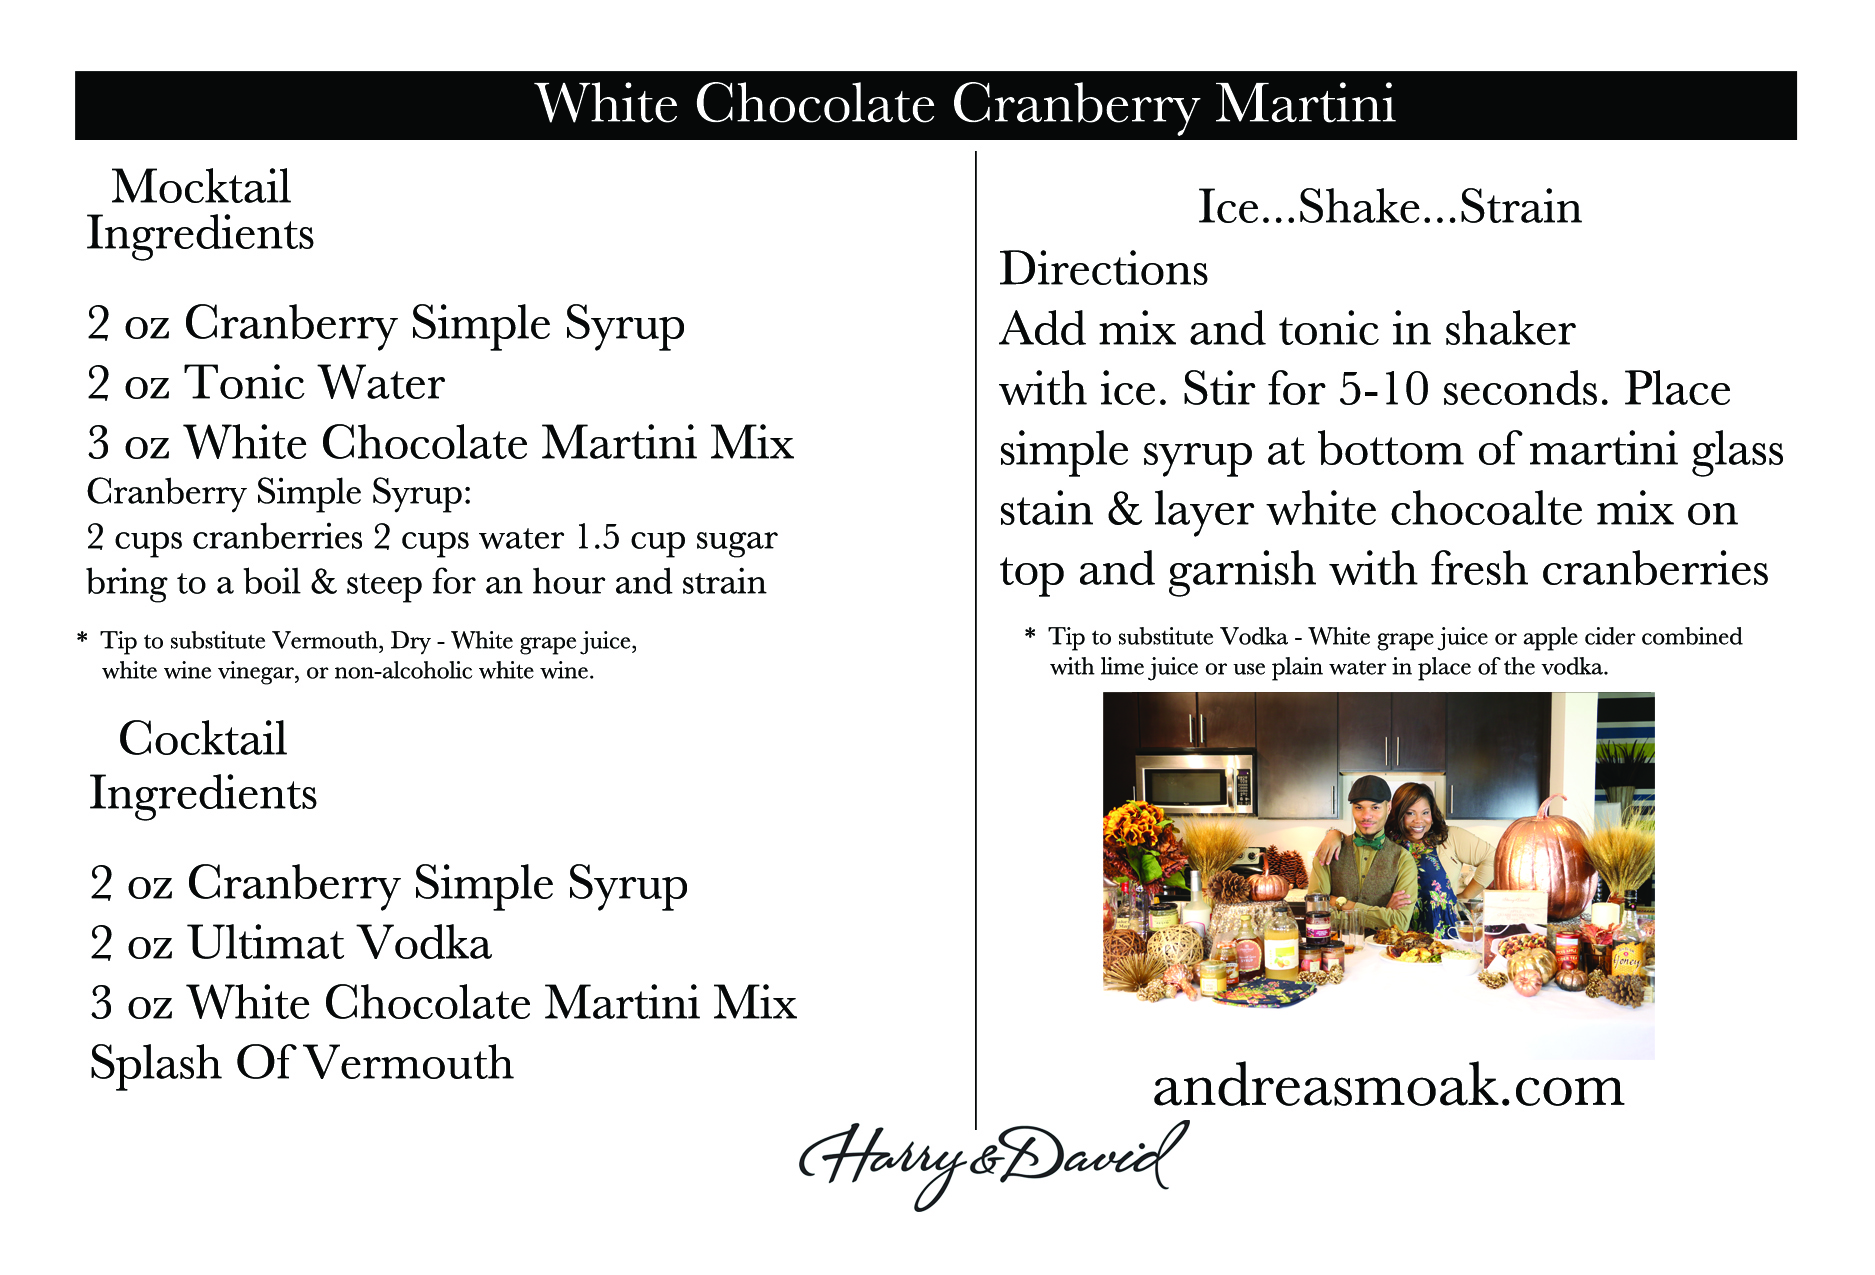 White Chocolate Cranberry Martini